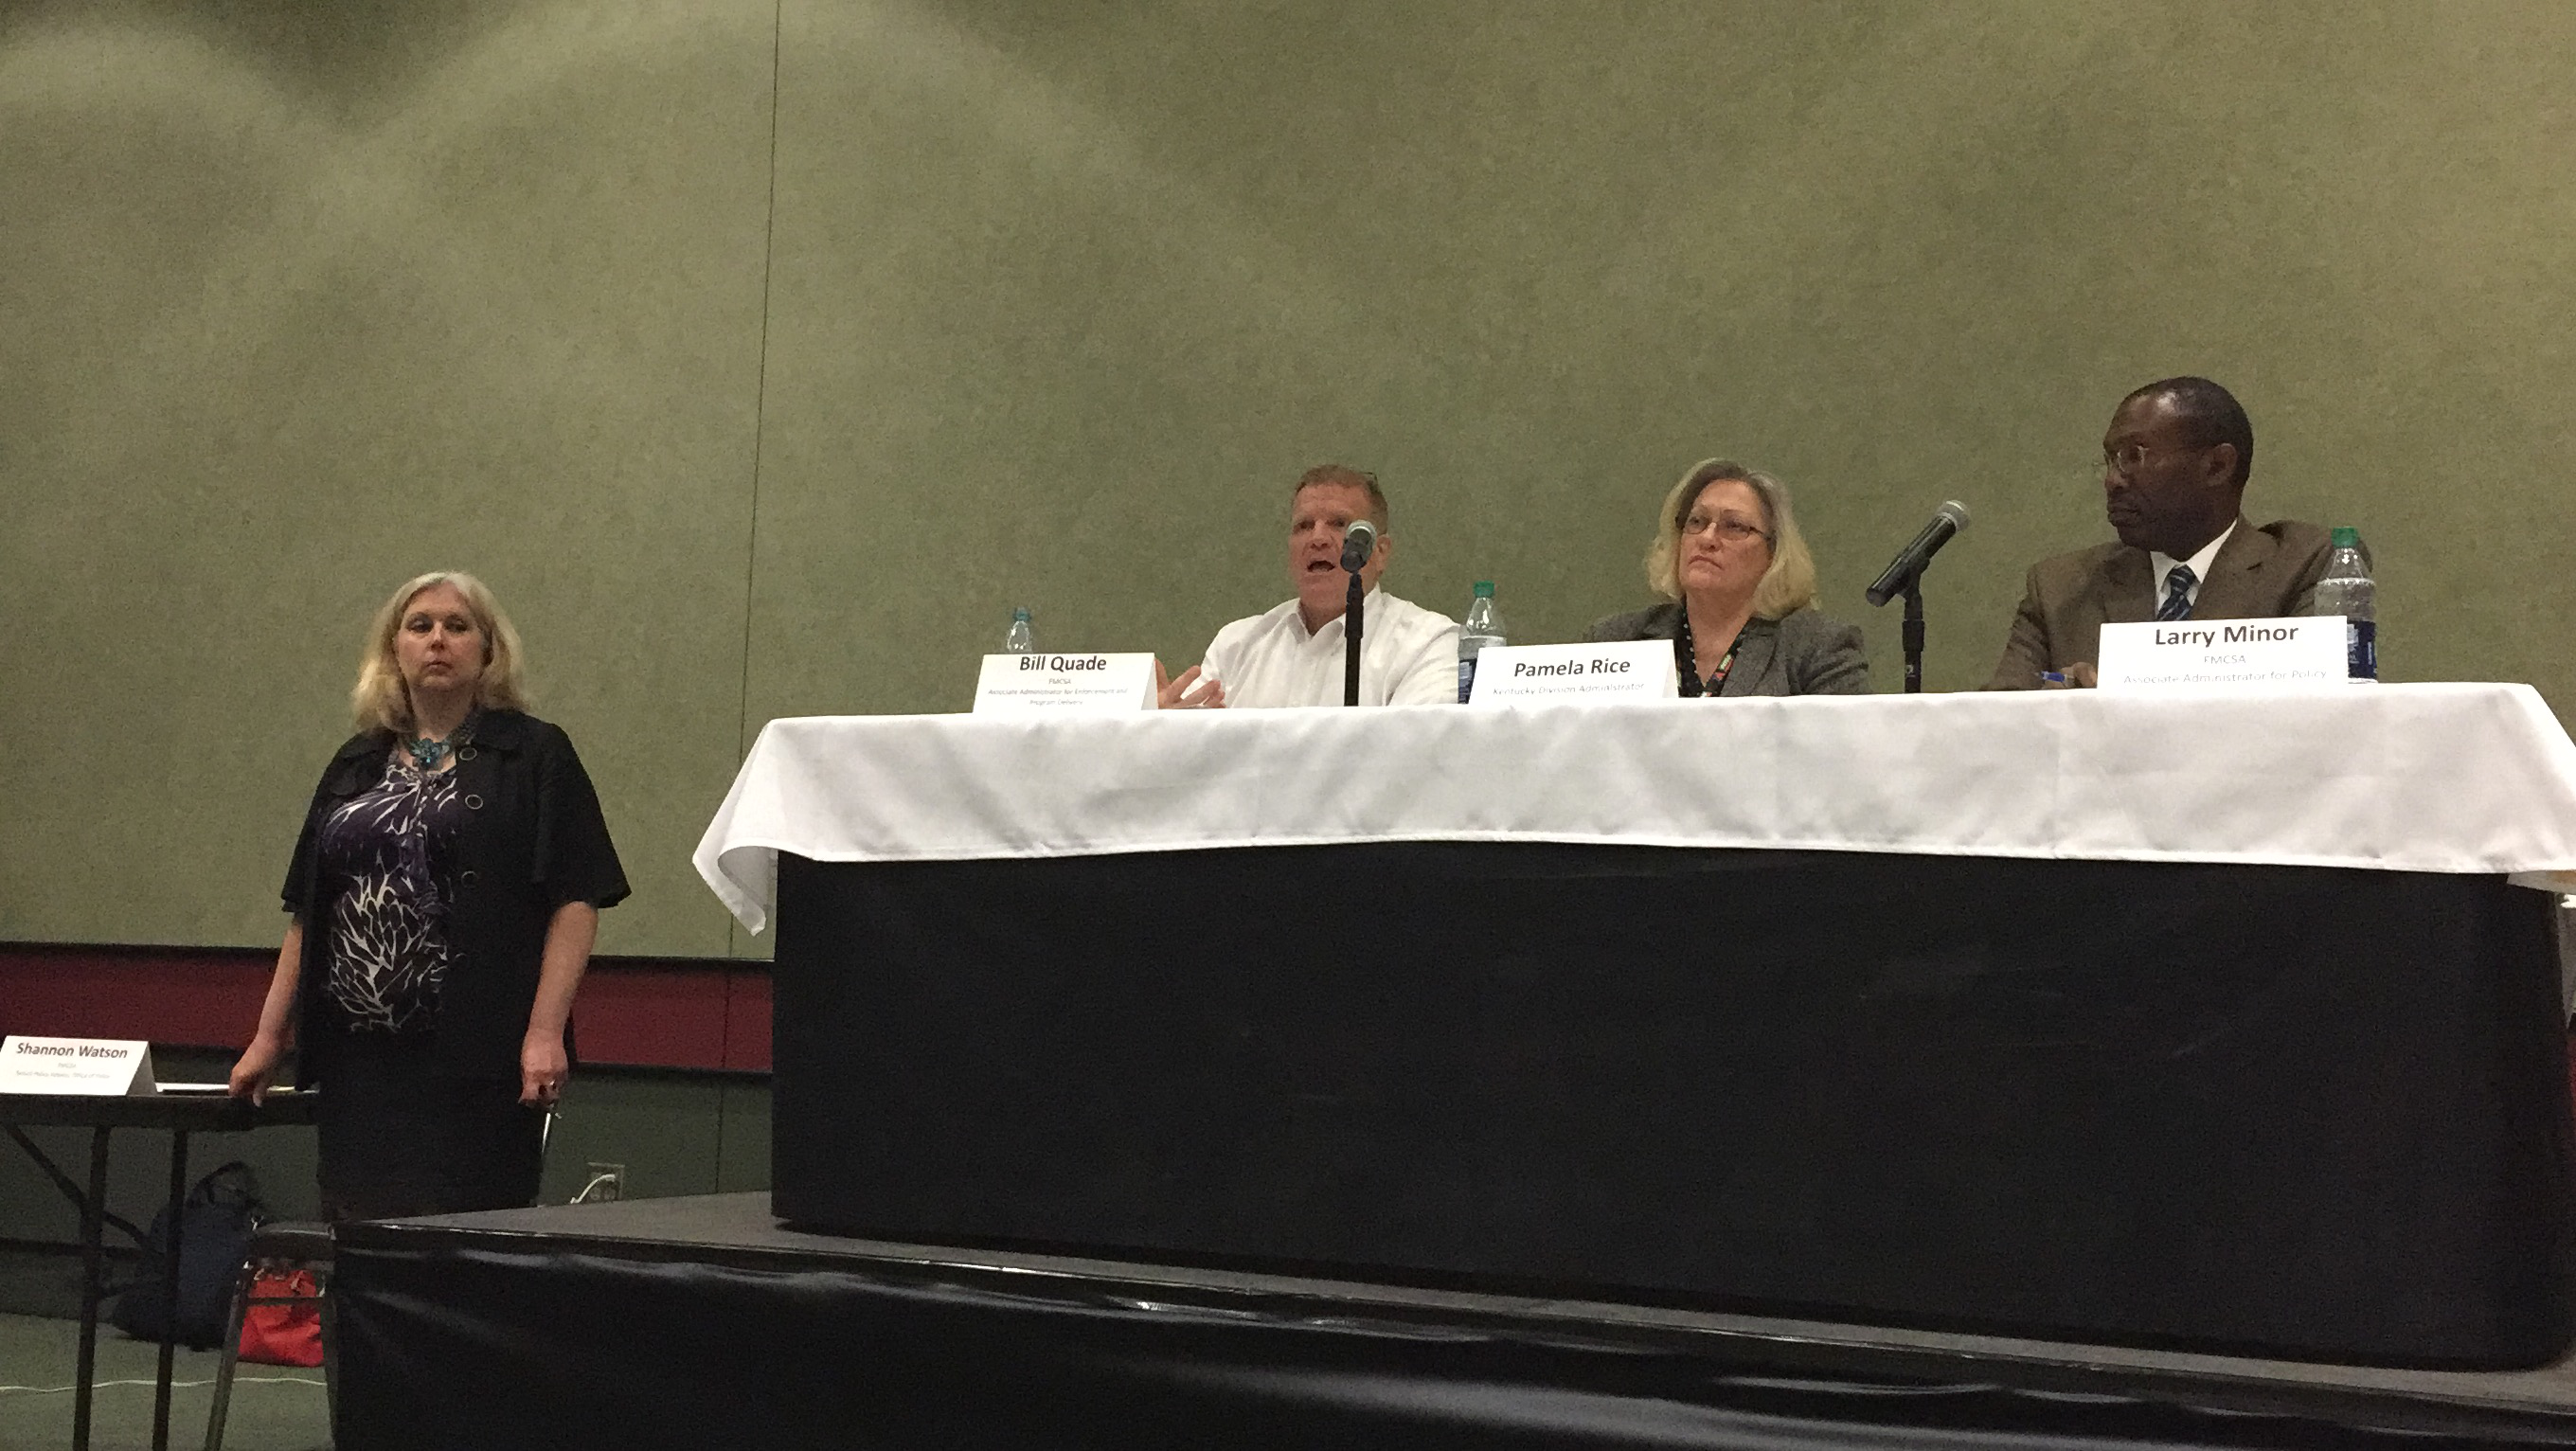 FMCSA's Bill Quade, Associate Administrator for Enforcement and Program Delivery; Pamela Rice, Kentucky Division Administrator; and Larry Minor, Associate Administrator for Policy sat on the agency's Beyond Compliance listening session panel Friday at the Mid-America Trucking Show in Louisville, Ky.